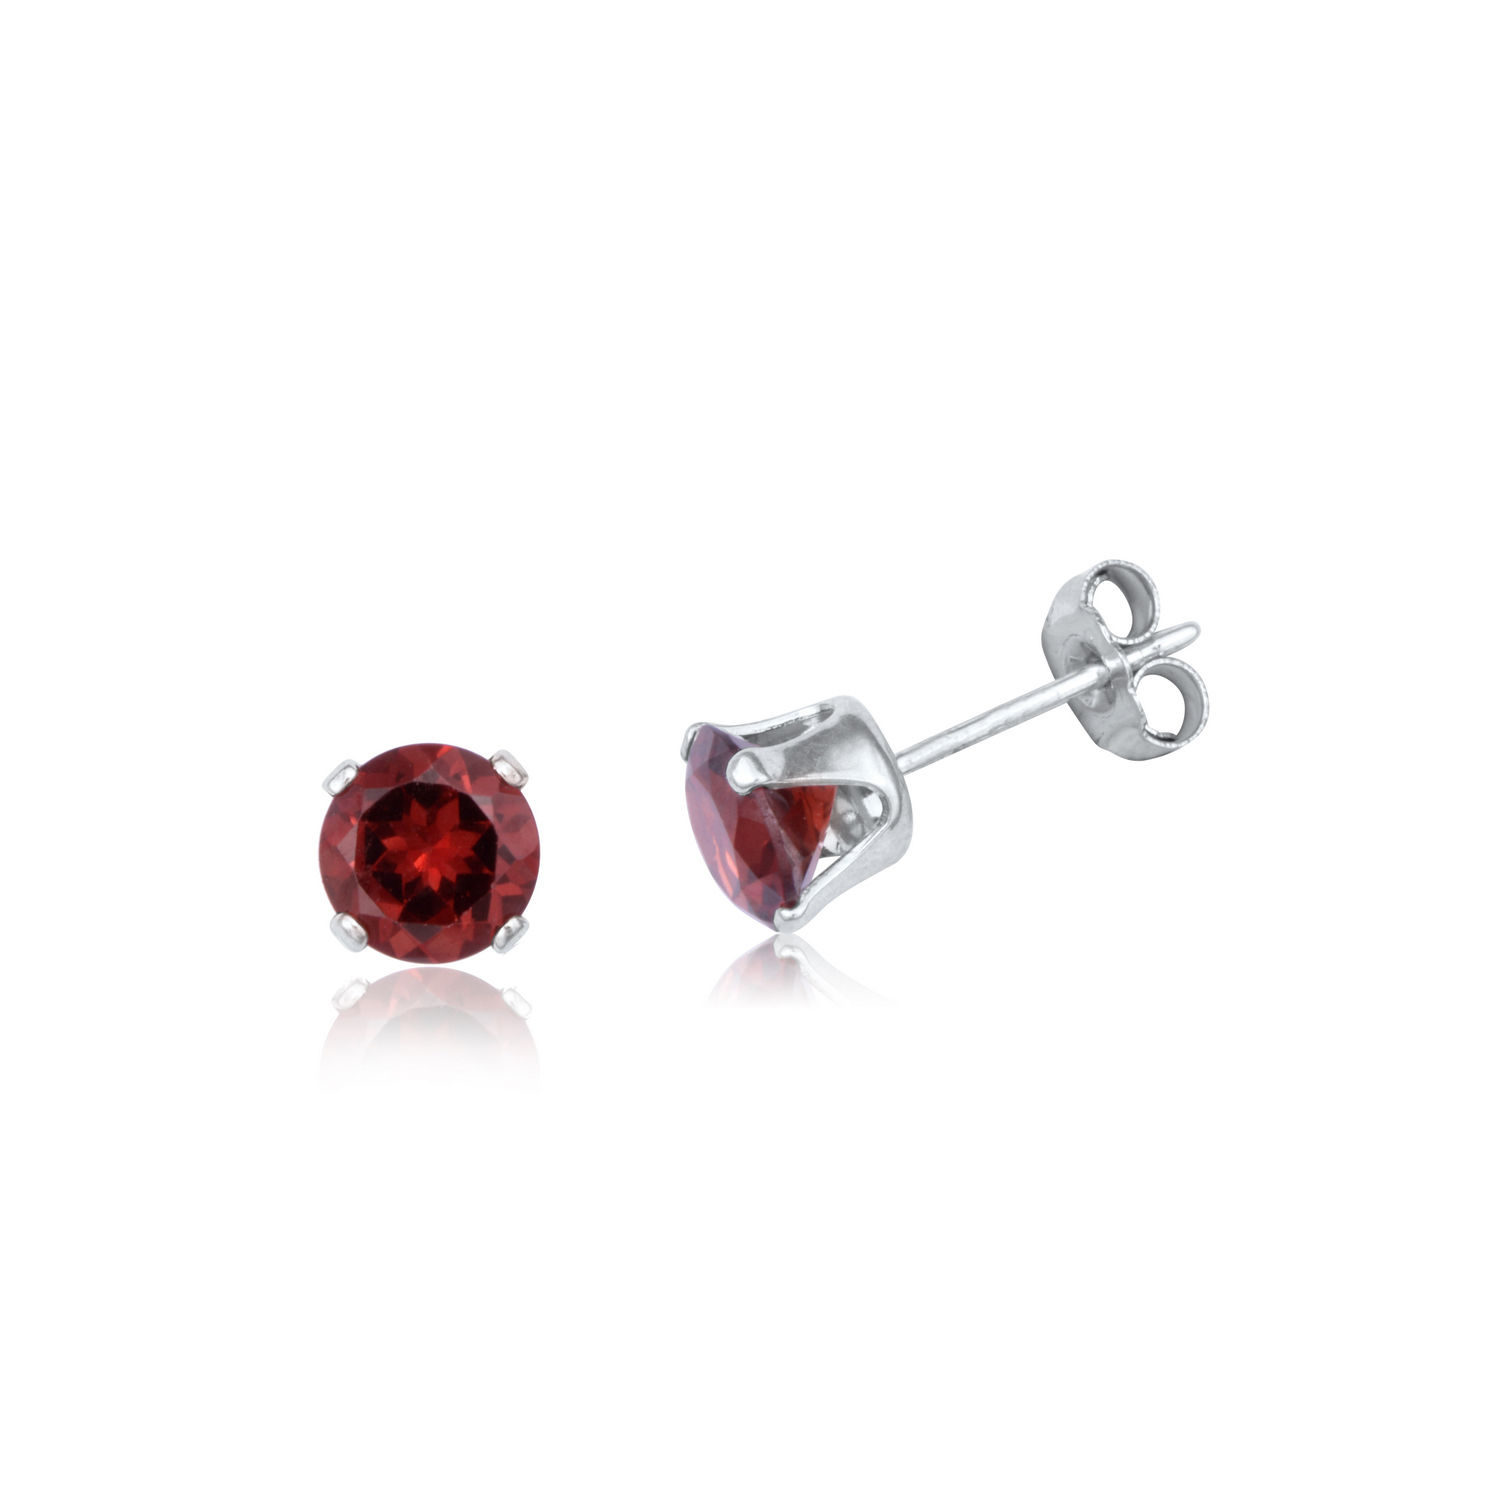 Genuine Sapphire, Ruby, Emerald & Sterling Silver Stud Earrings